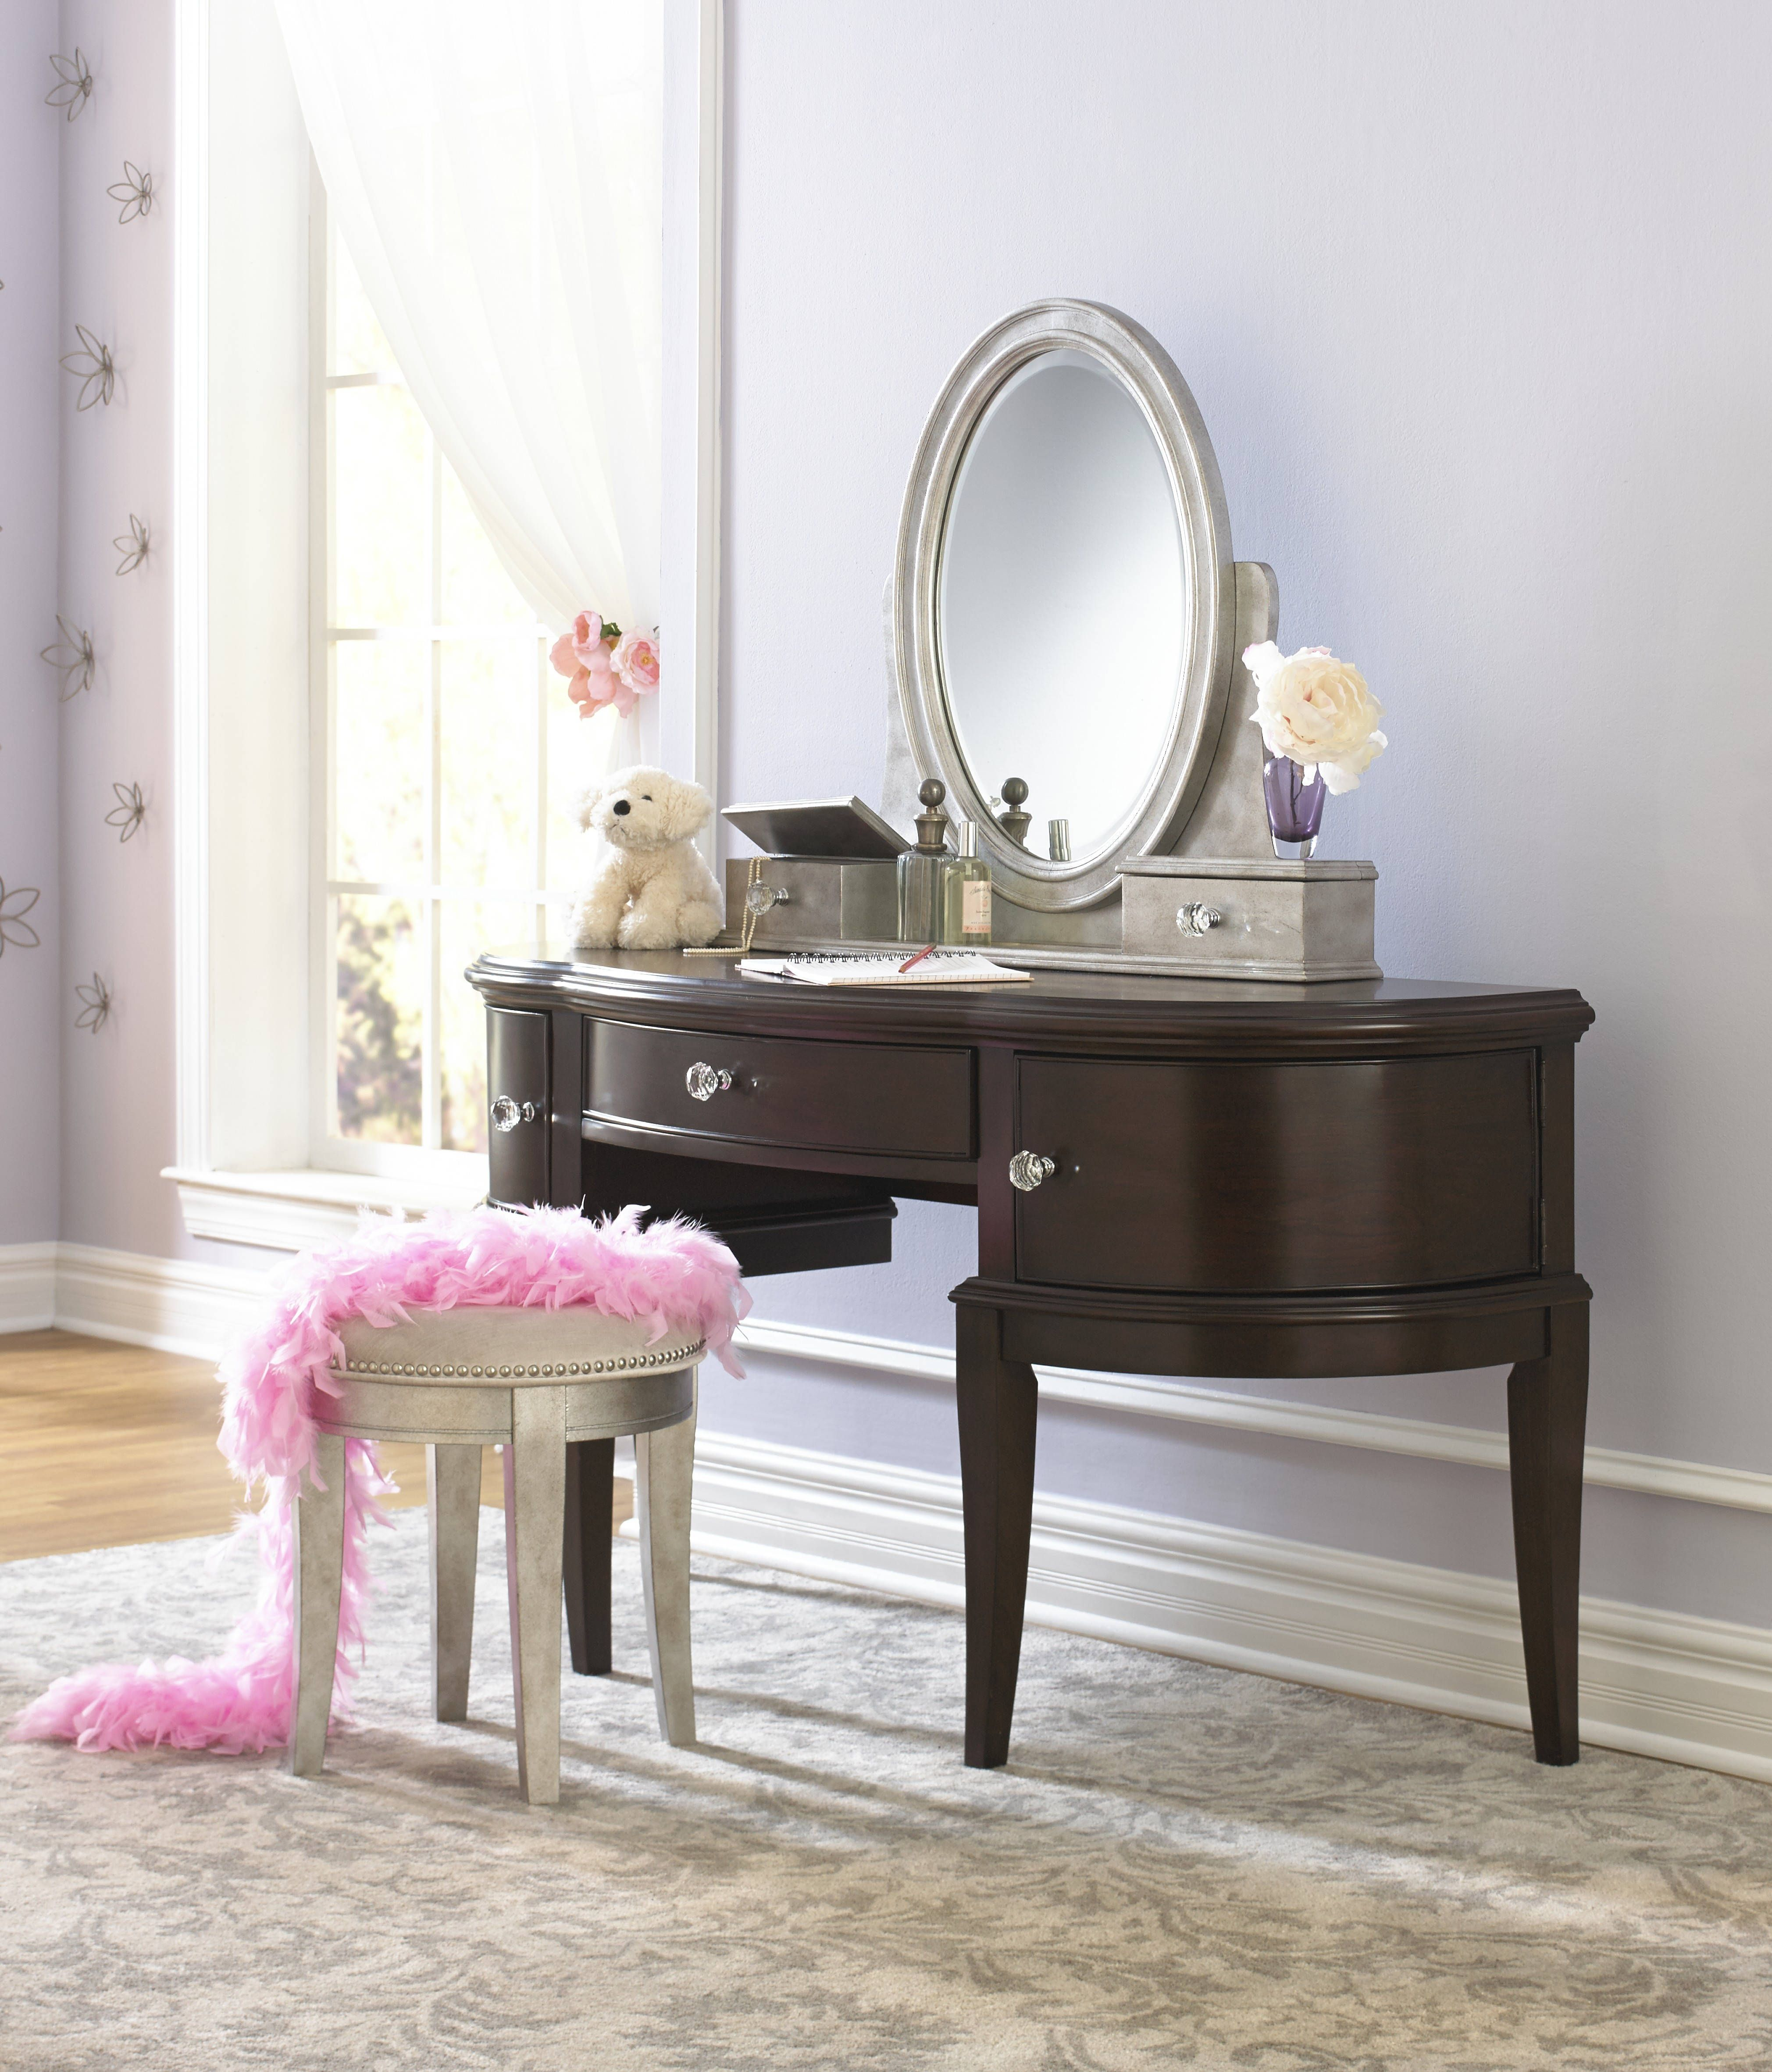 mirrors silver set mirror design furniture makeup be elegant chair bedroom sale with and desk mirrored for table vanity